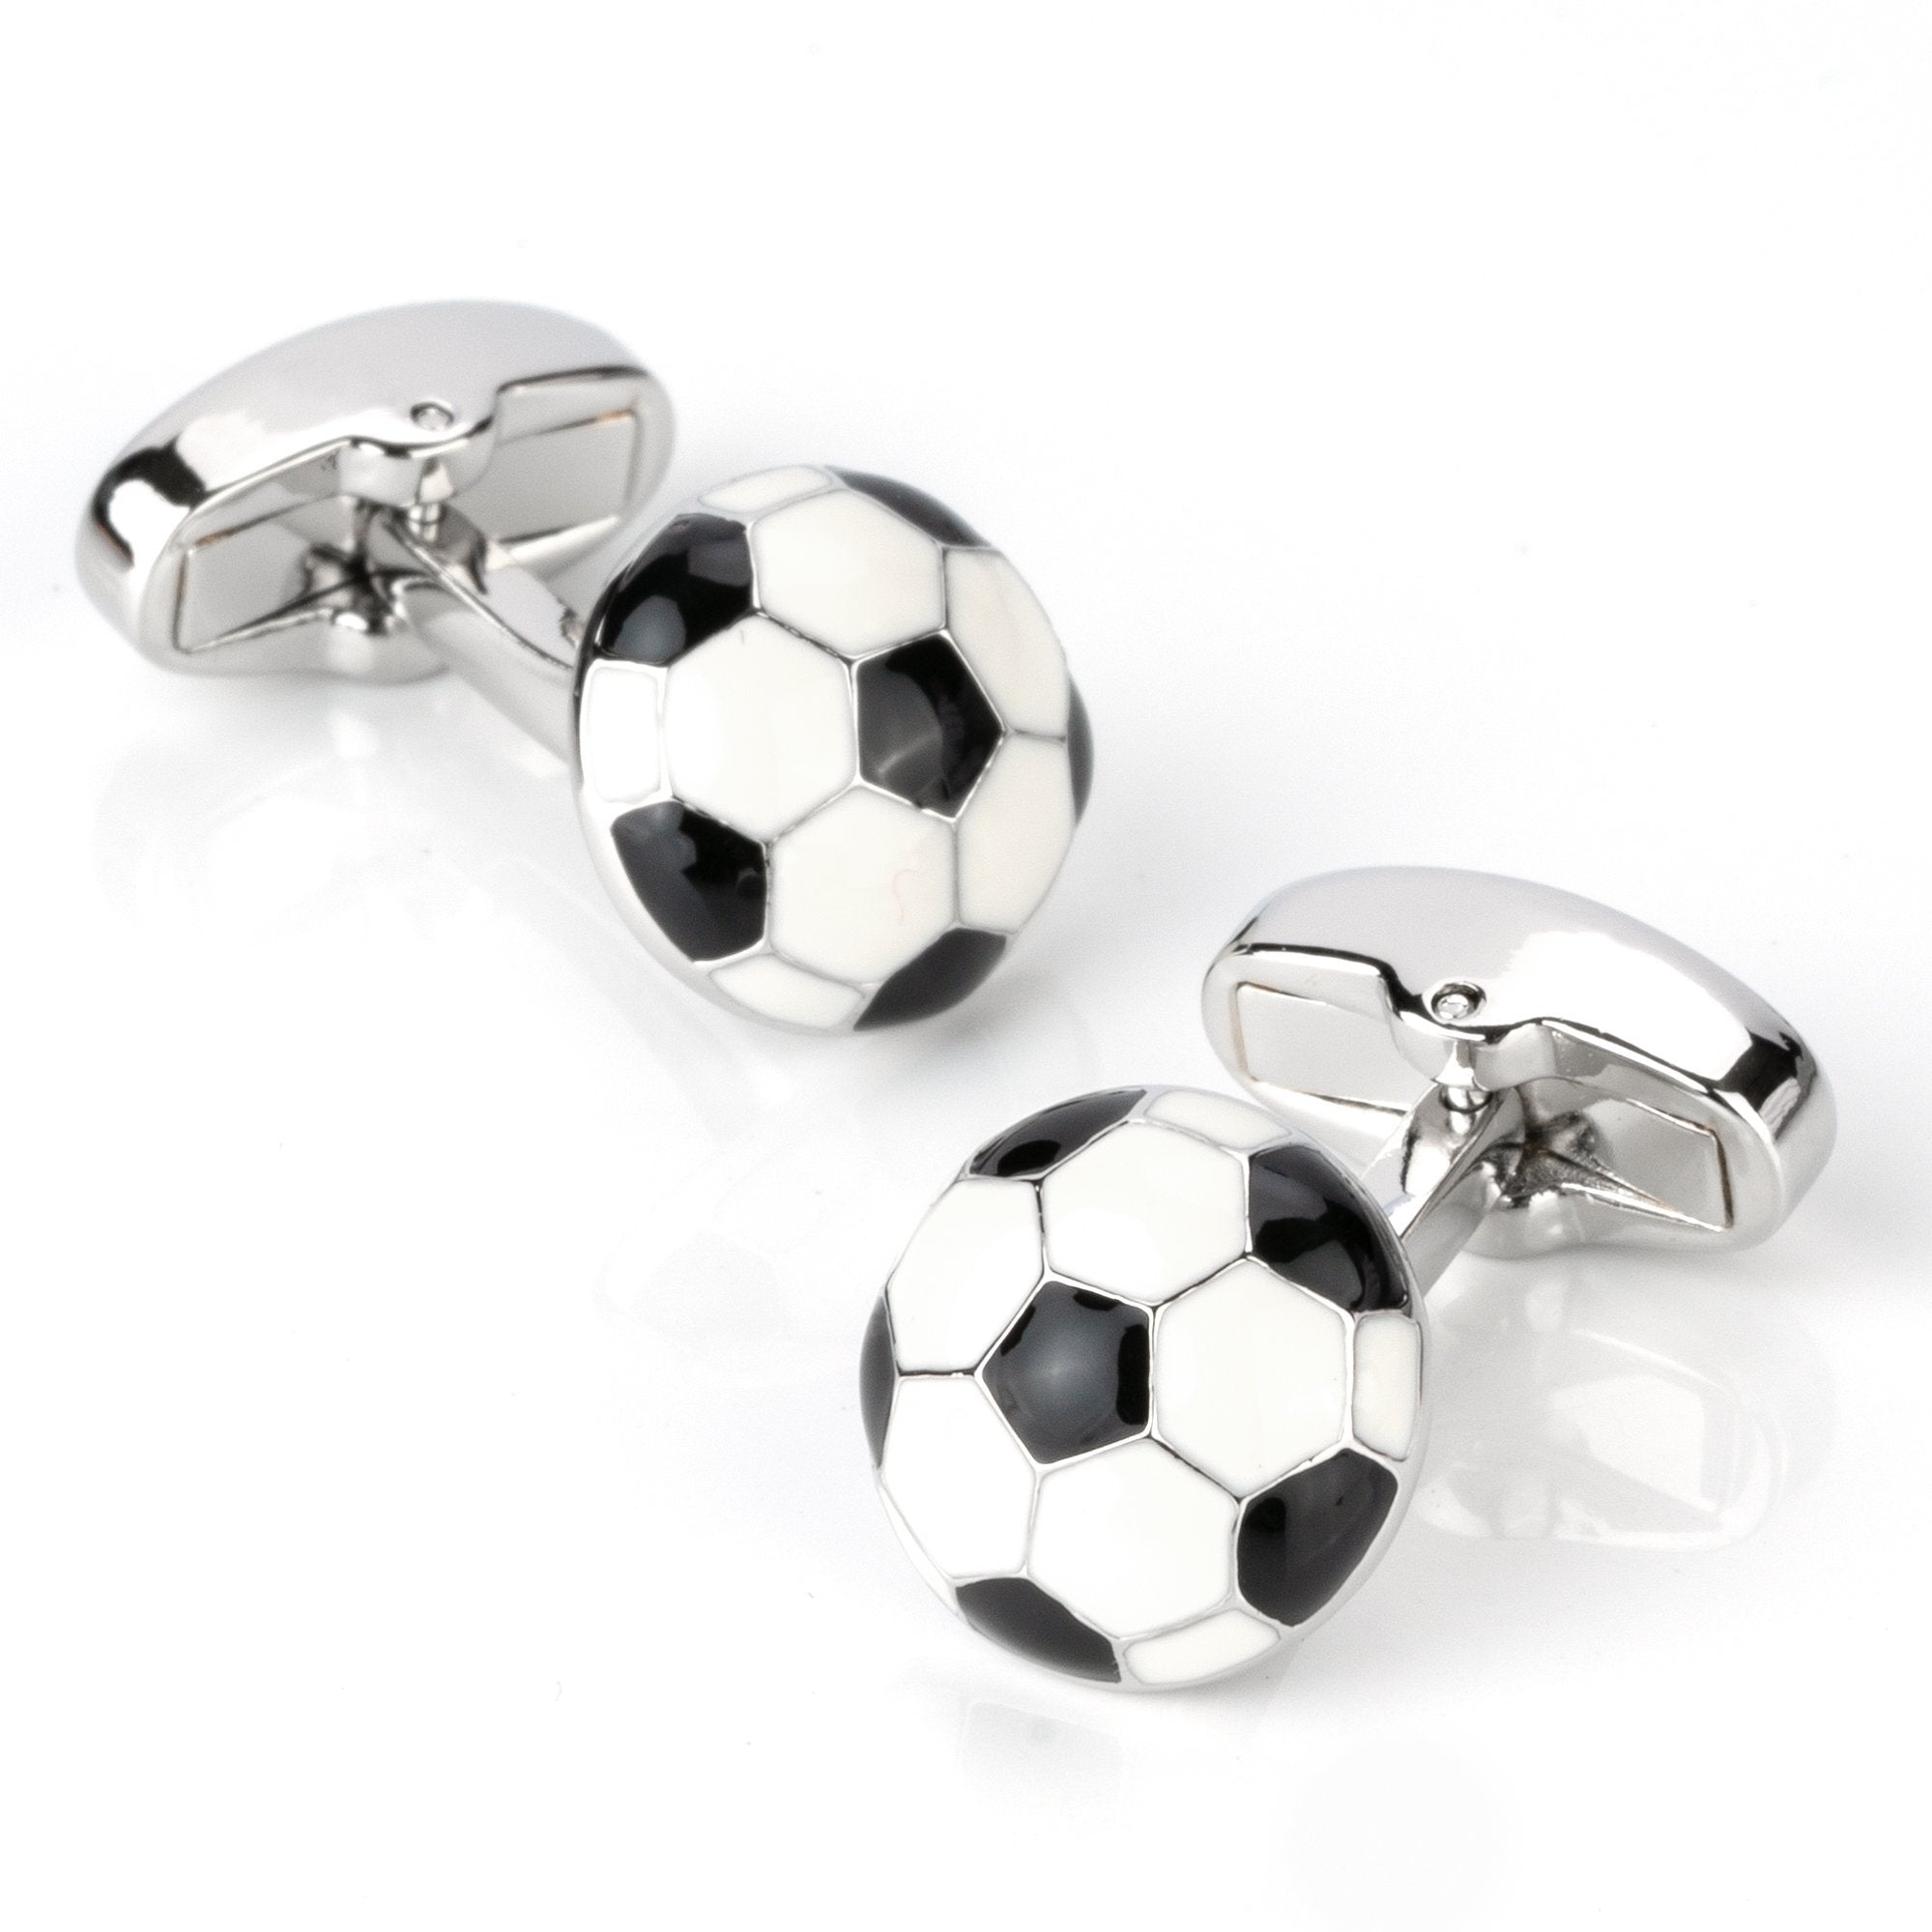 Black & White Soccer Ball Cufflinks, Novelty Cufflinks, Cuffed.com.au, CL4282, Sports, Clinks Australia